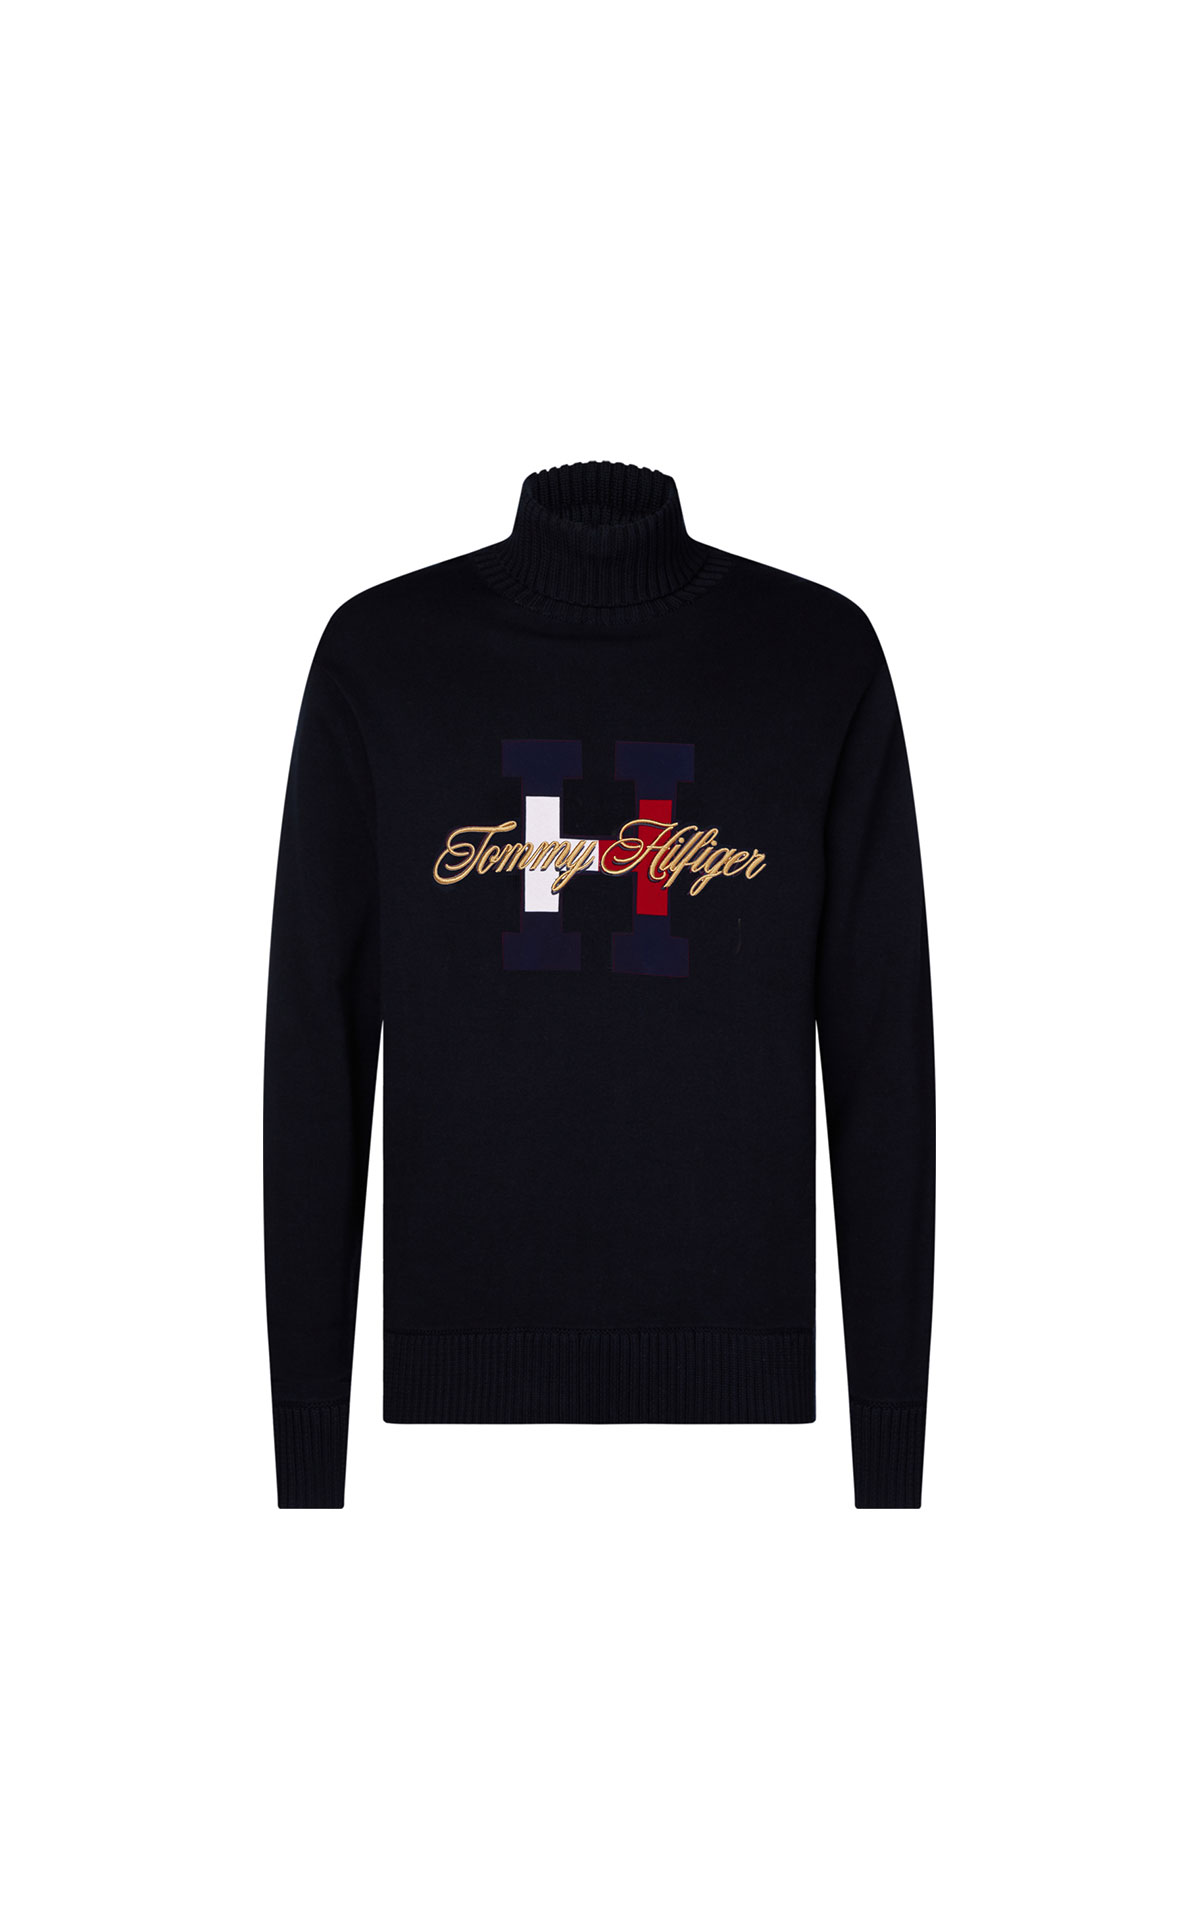 Tommy Hilfiger Men's Hilfiger H-Flag Roll Neck at The Bicester Village Shopping Collection